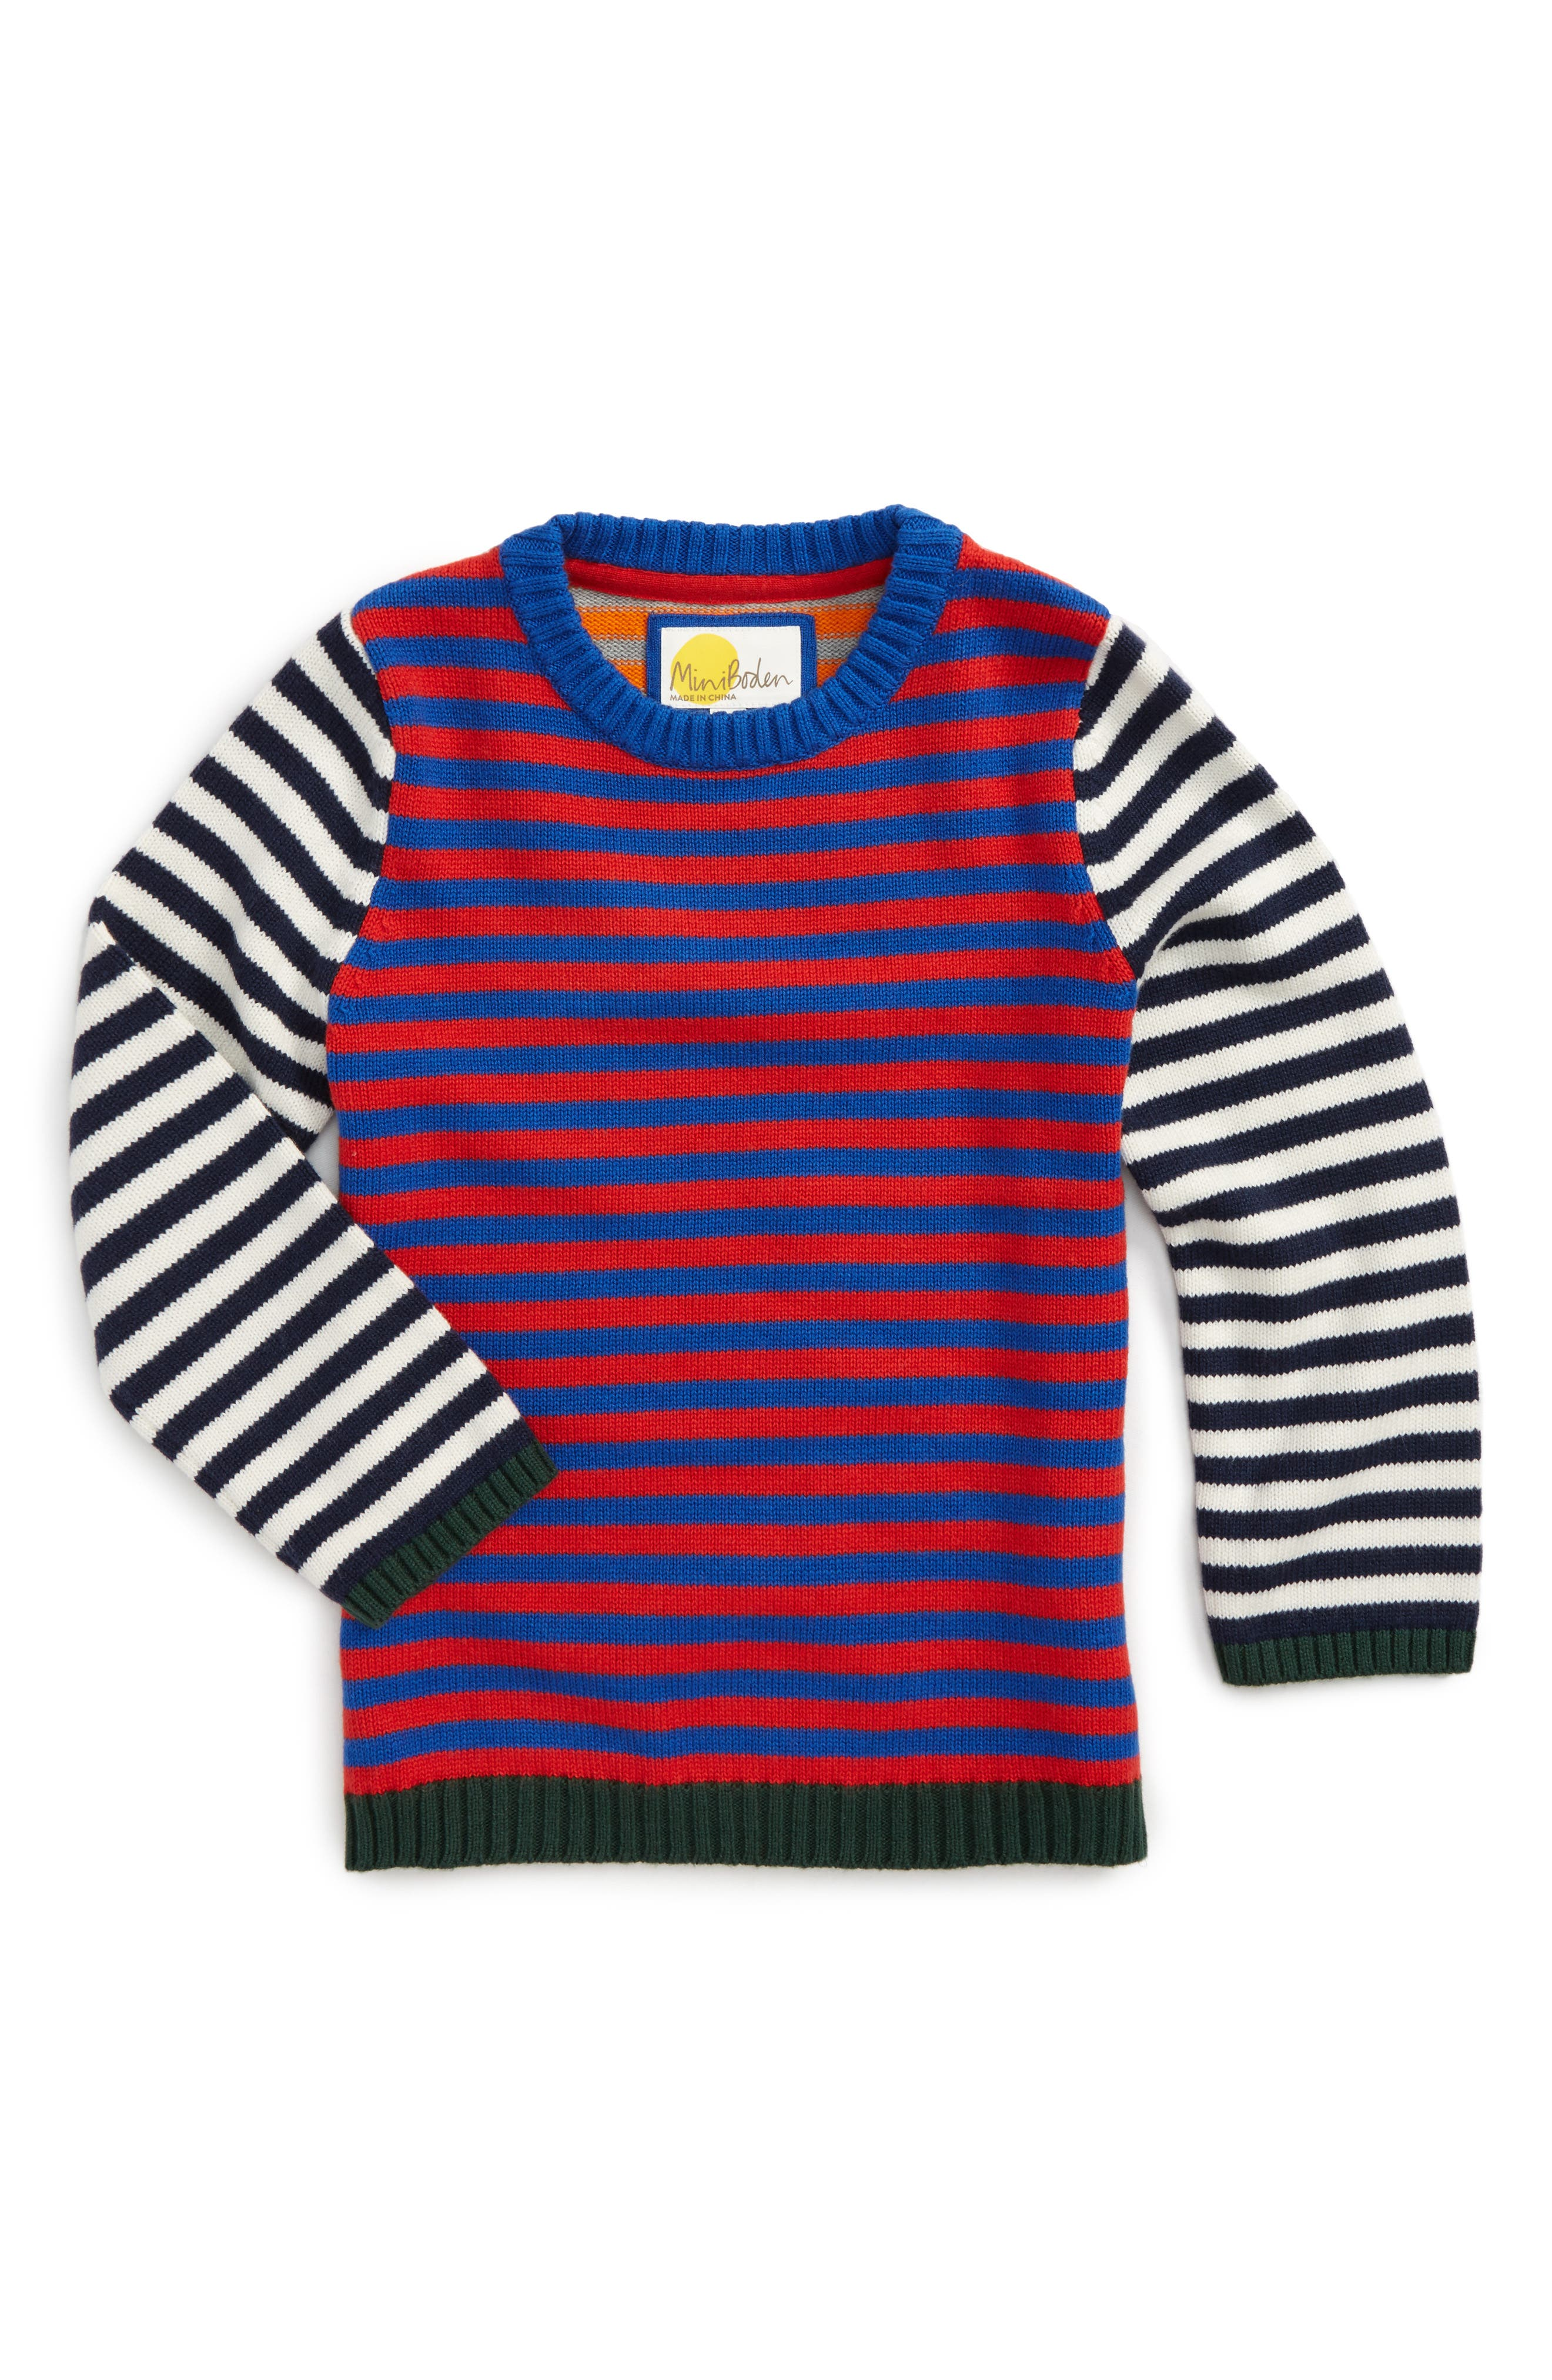 Hotchpotch Sweater,                             Main thumbnail 1, color,                             604